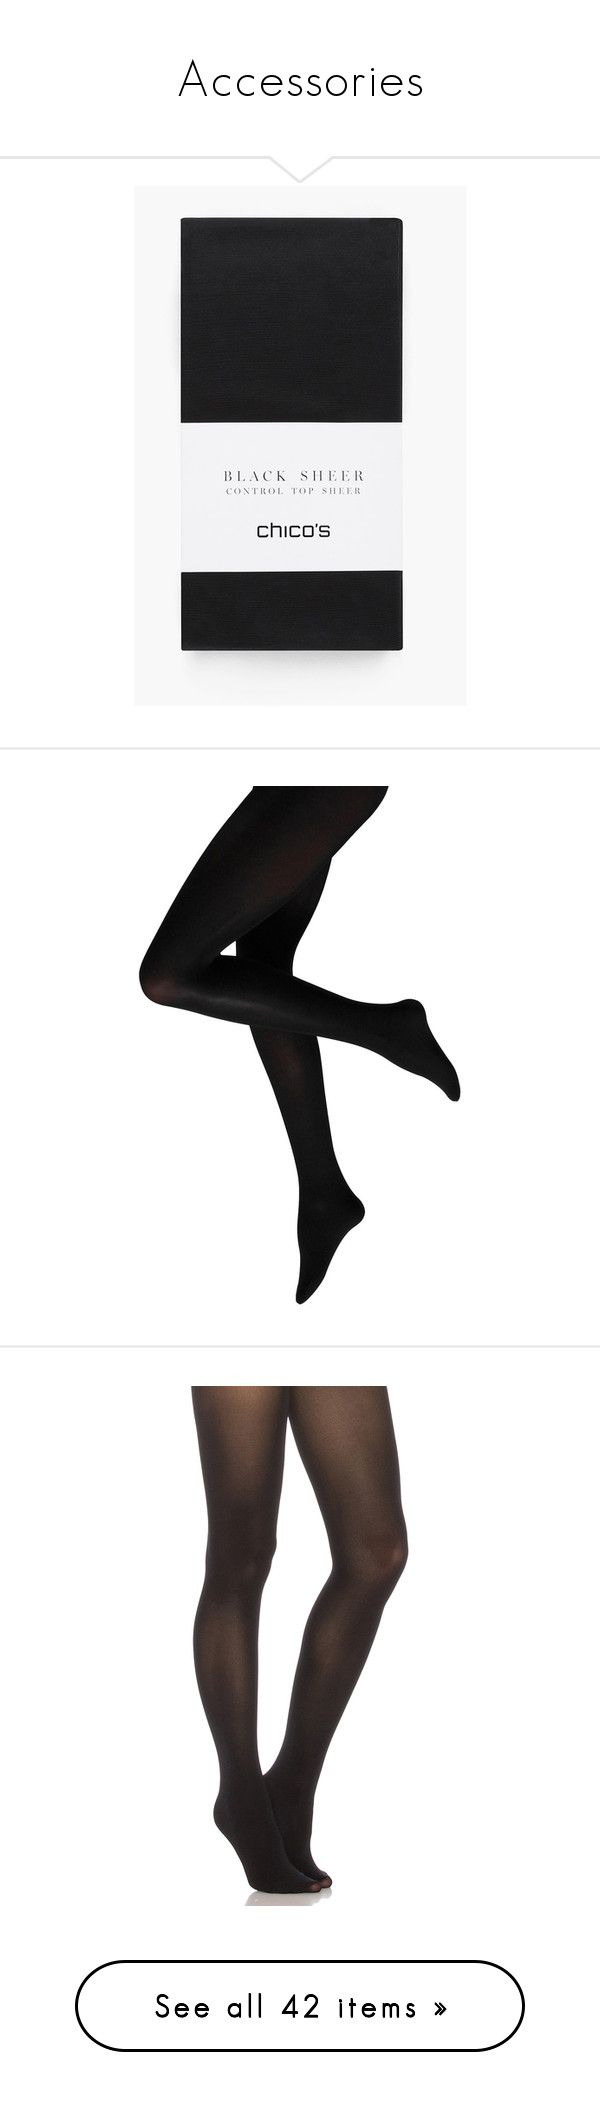 """""""Accessories"""" by lupa-di-bella1 on Polyvore featuring intimates, hosiery, tights, black, pantyhose stockings, panty hose stockings, pantyhose tights, sheer tights, sheer hosiery and pants"""